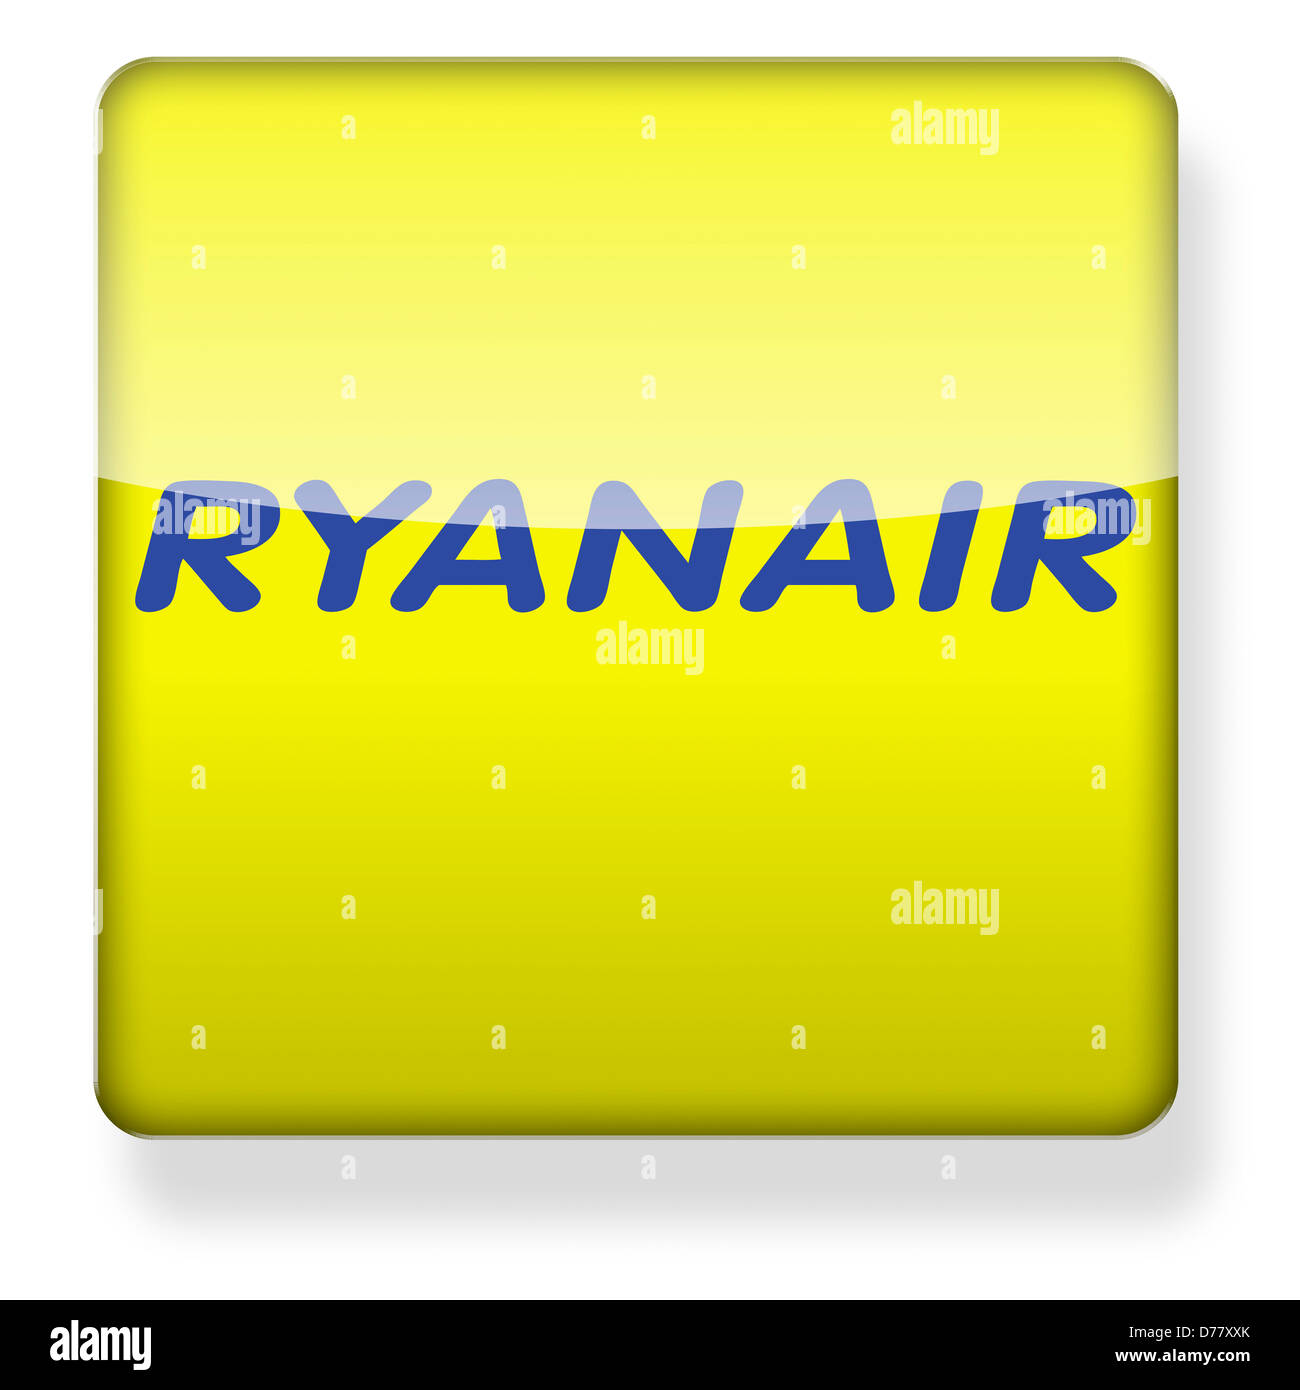 Ryanair logo as an app icon. Clipping path included. - Stock Image